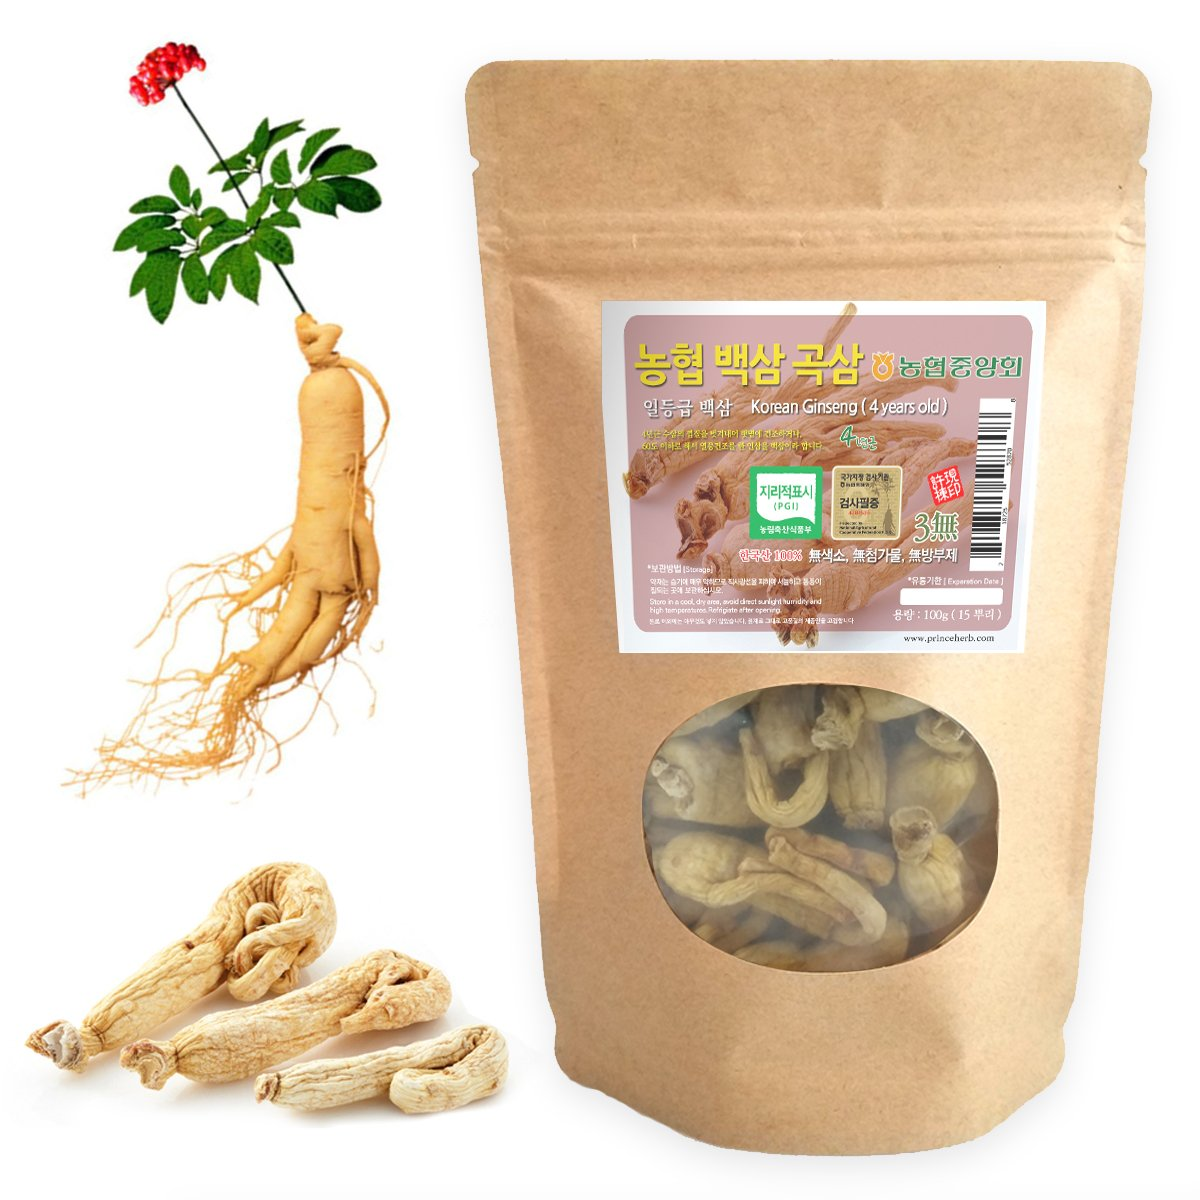 [Medicinal Korean Herb] 4 Years Old Korean Ginseng (Renshen/인삼) Dried Bulk Herbs 100g (15 roots)